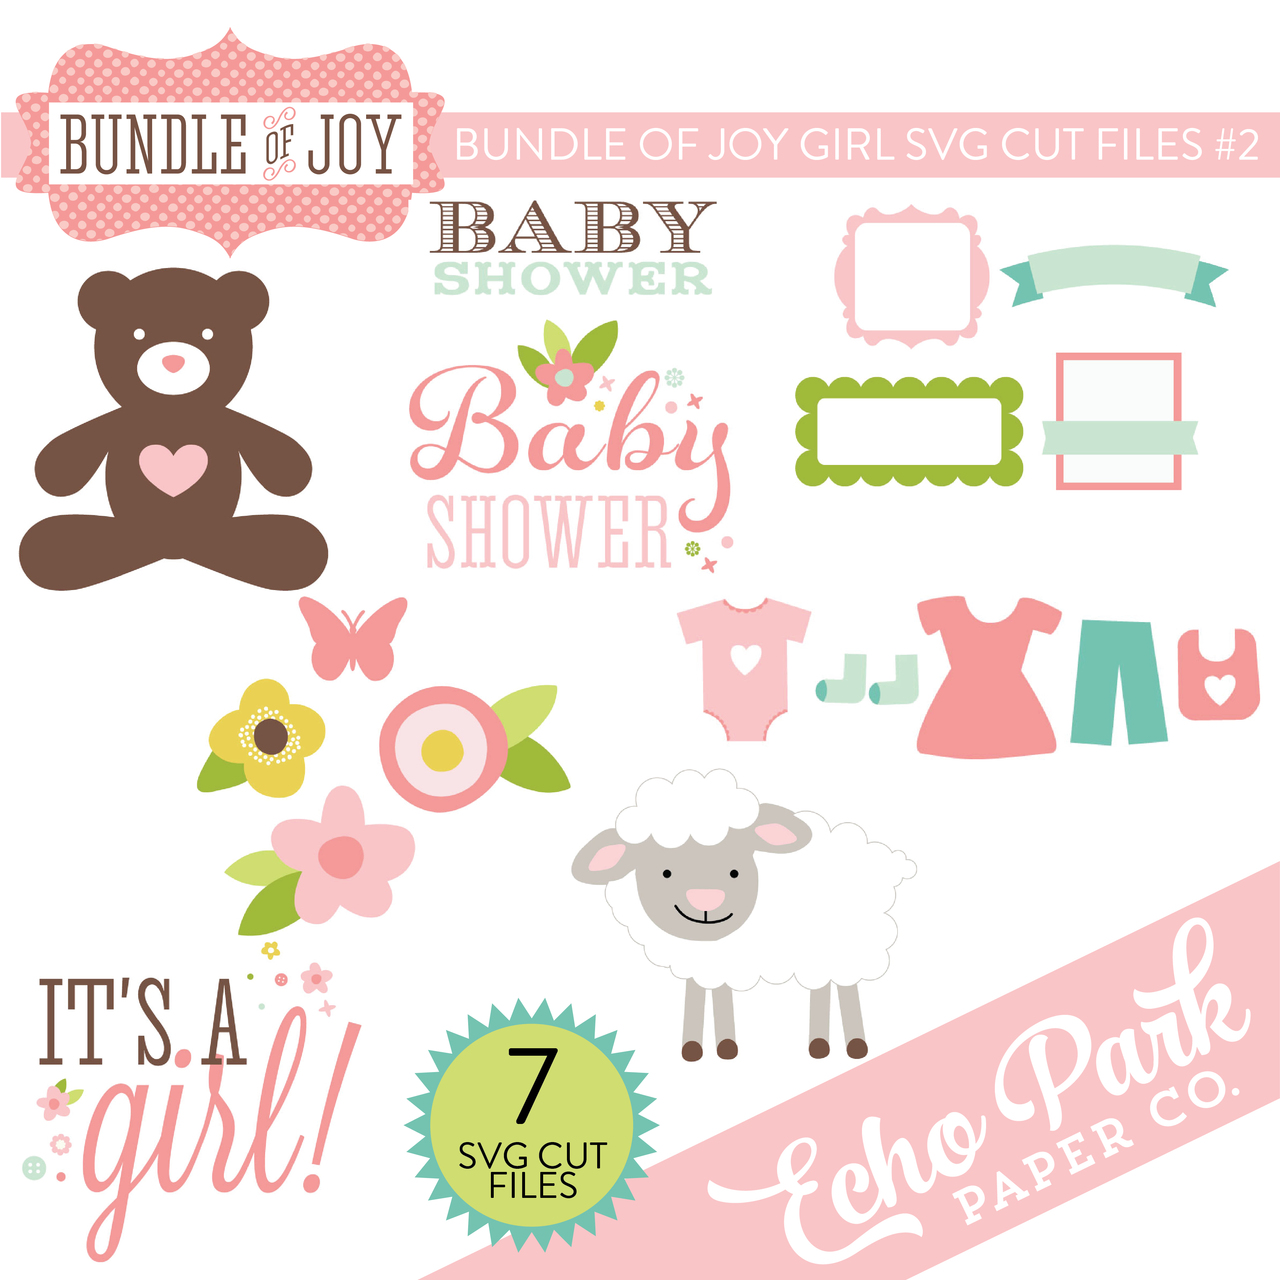 Bundle of Joy - Girl SVG Cut Files #2